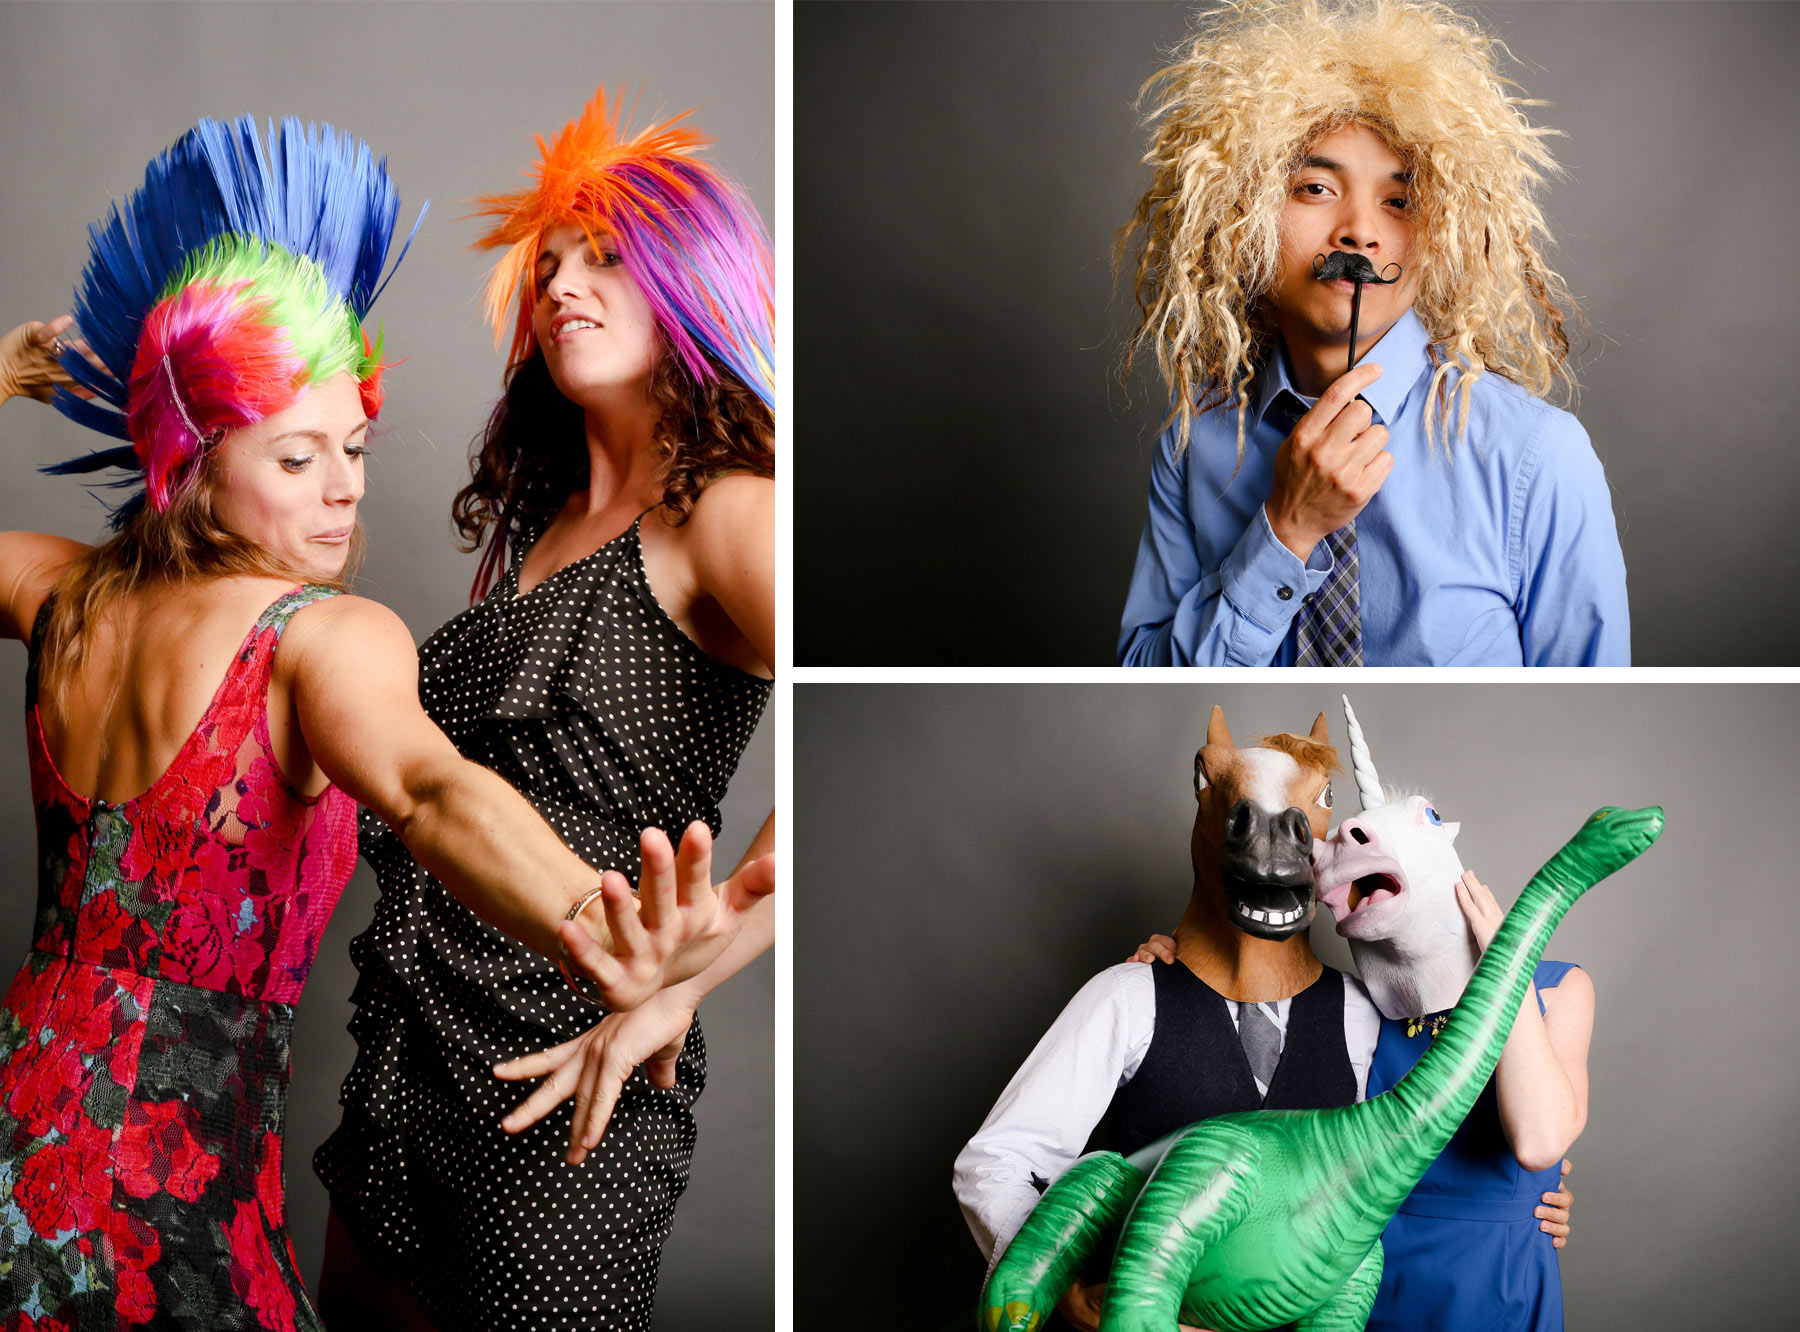 05-Minneapolis-Minnesota-Wedding-Photography-by-Vick-Photography-Crazy-Cam-Reception-Lafayette-Country-Club-Dance.jpg